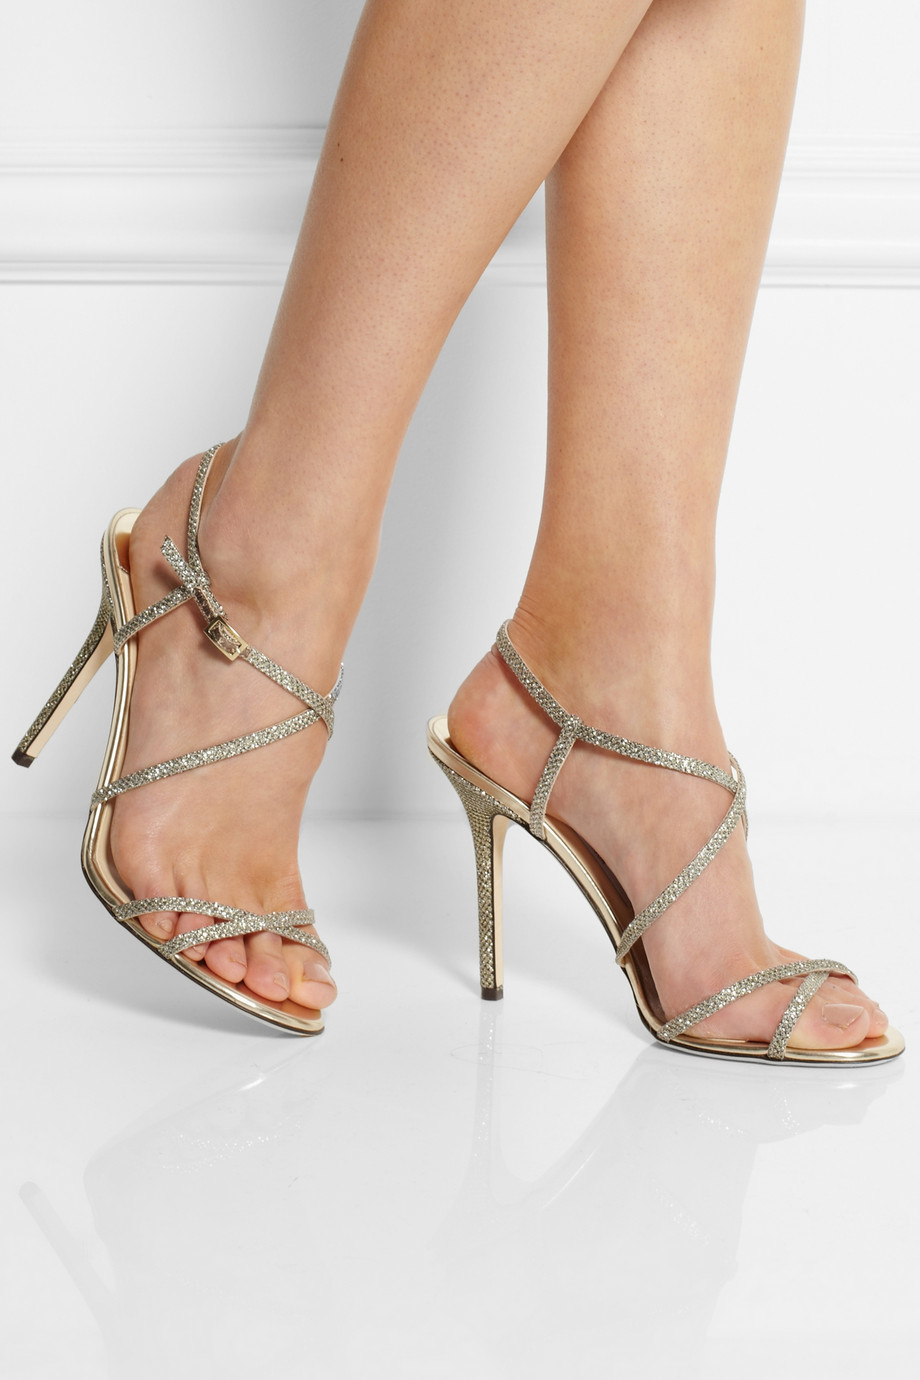 Designer Jimmy Choo Shoes Collection 2016 Up To 70 Off